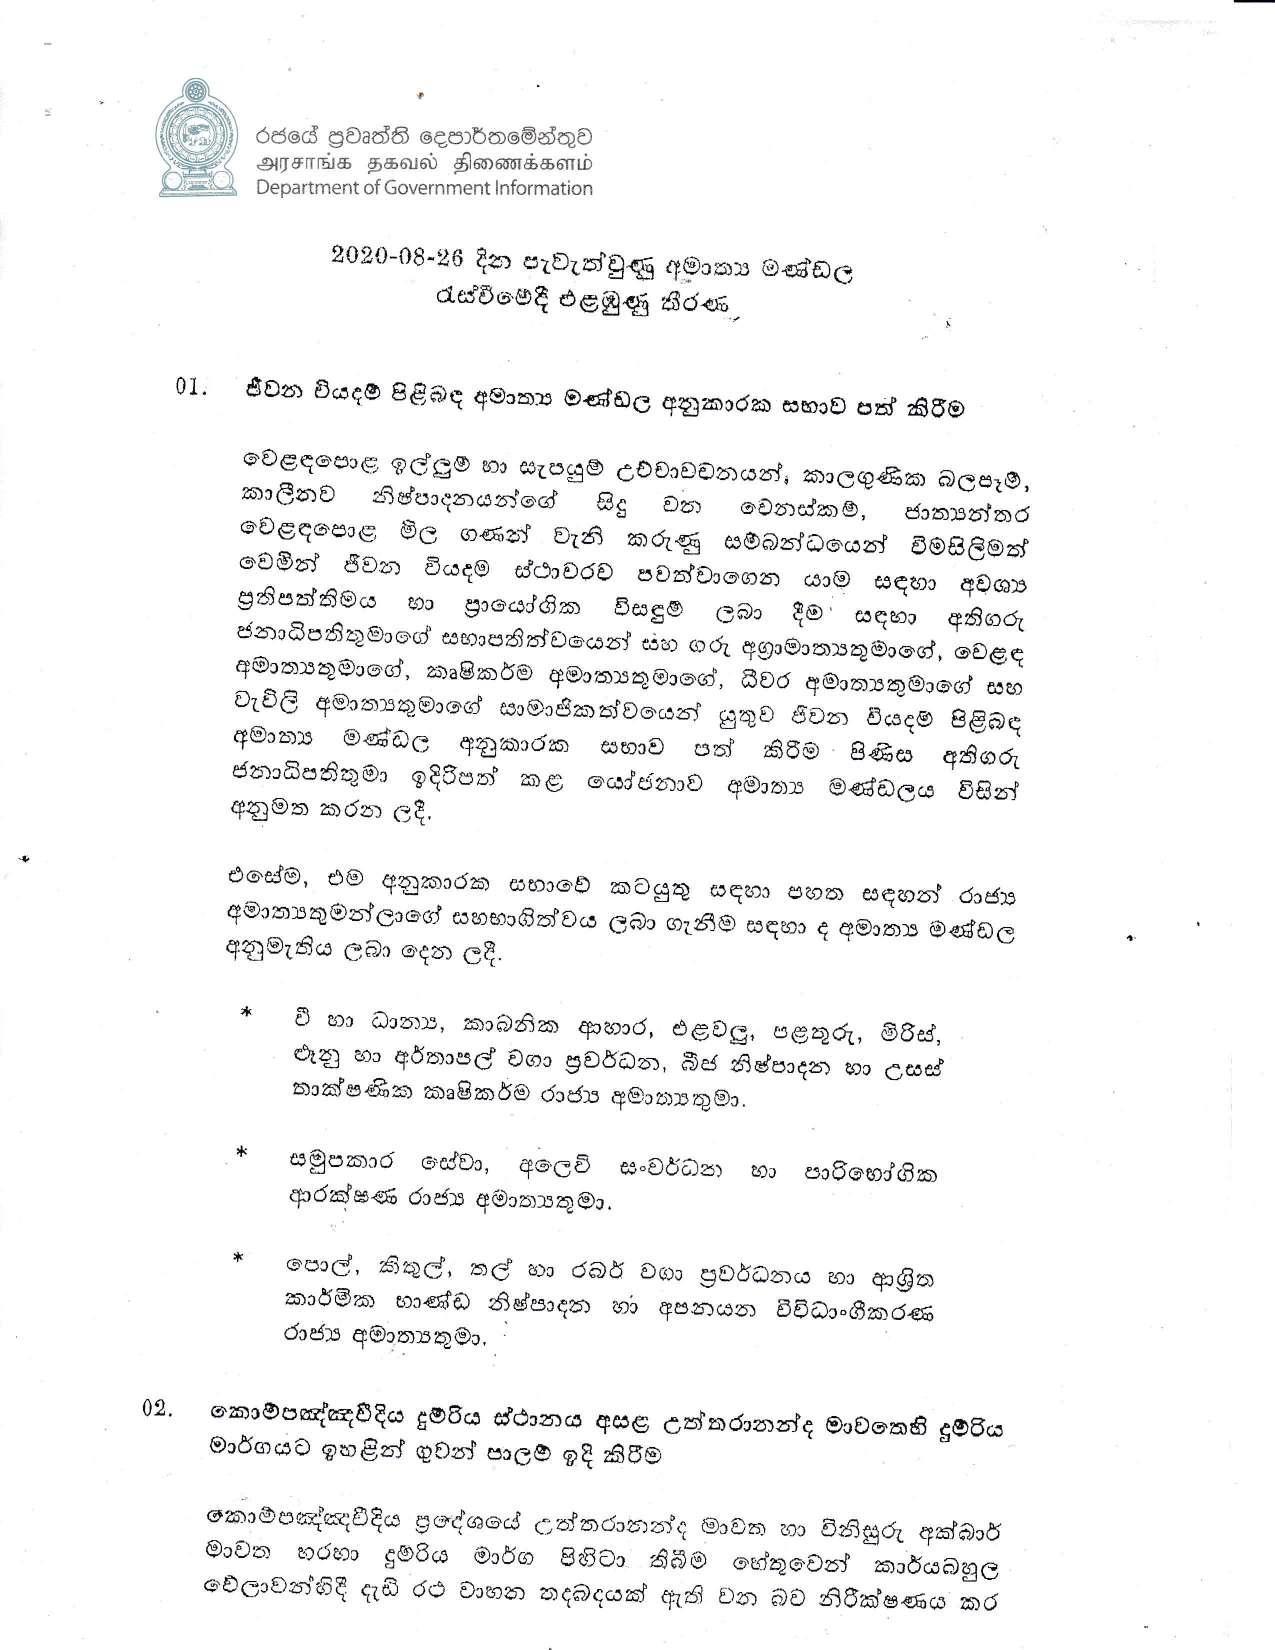 cabinet decision Sinhala 2020 08 26 compressed page 001